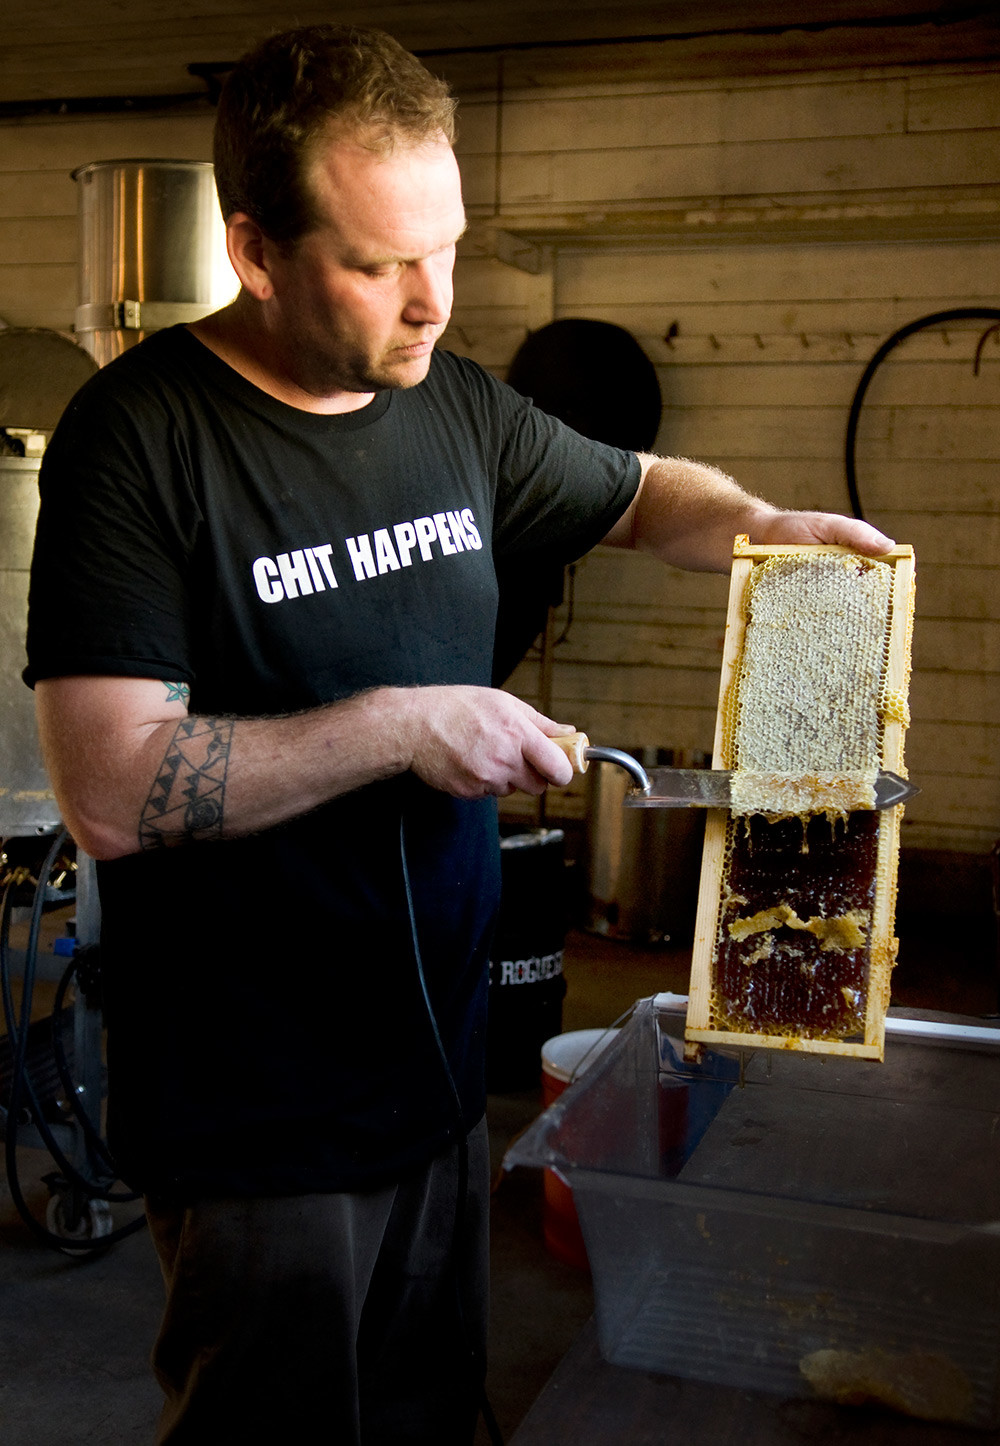 Slicing the beeswax off the honeycombs.